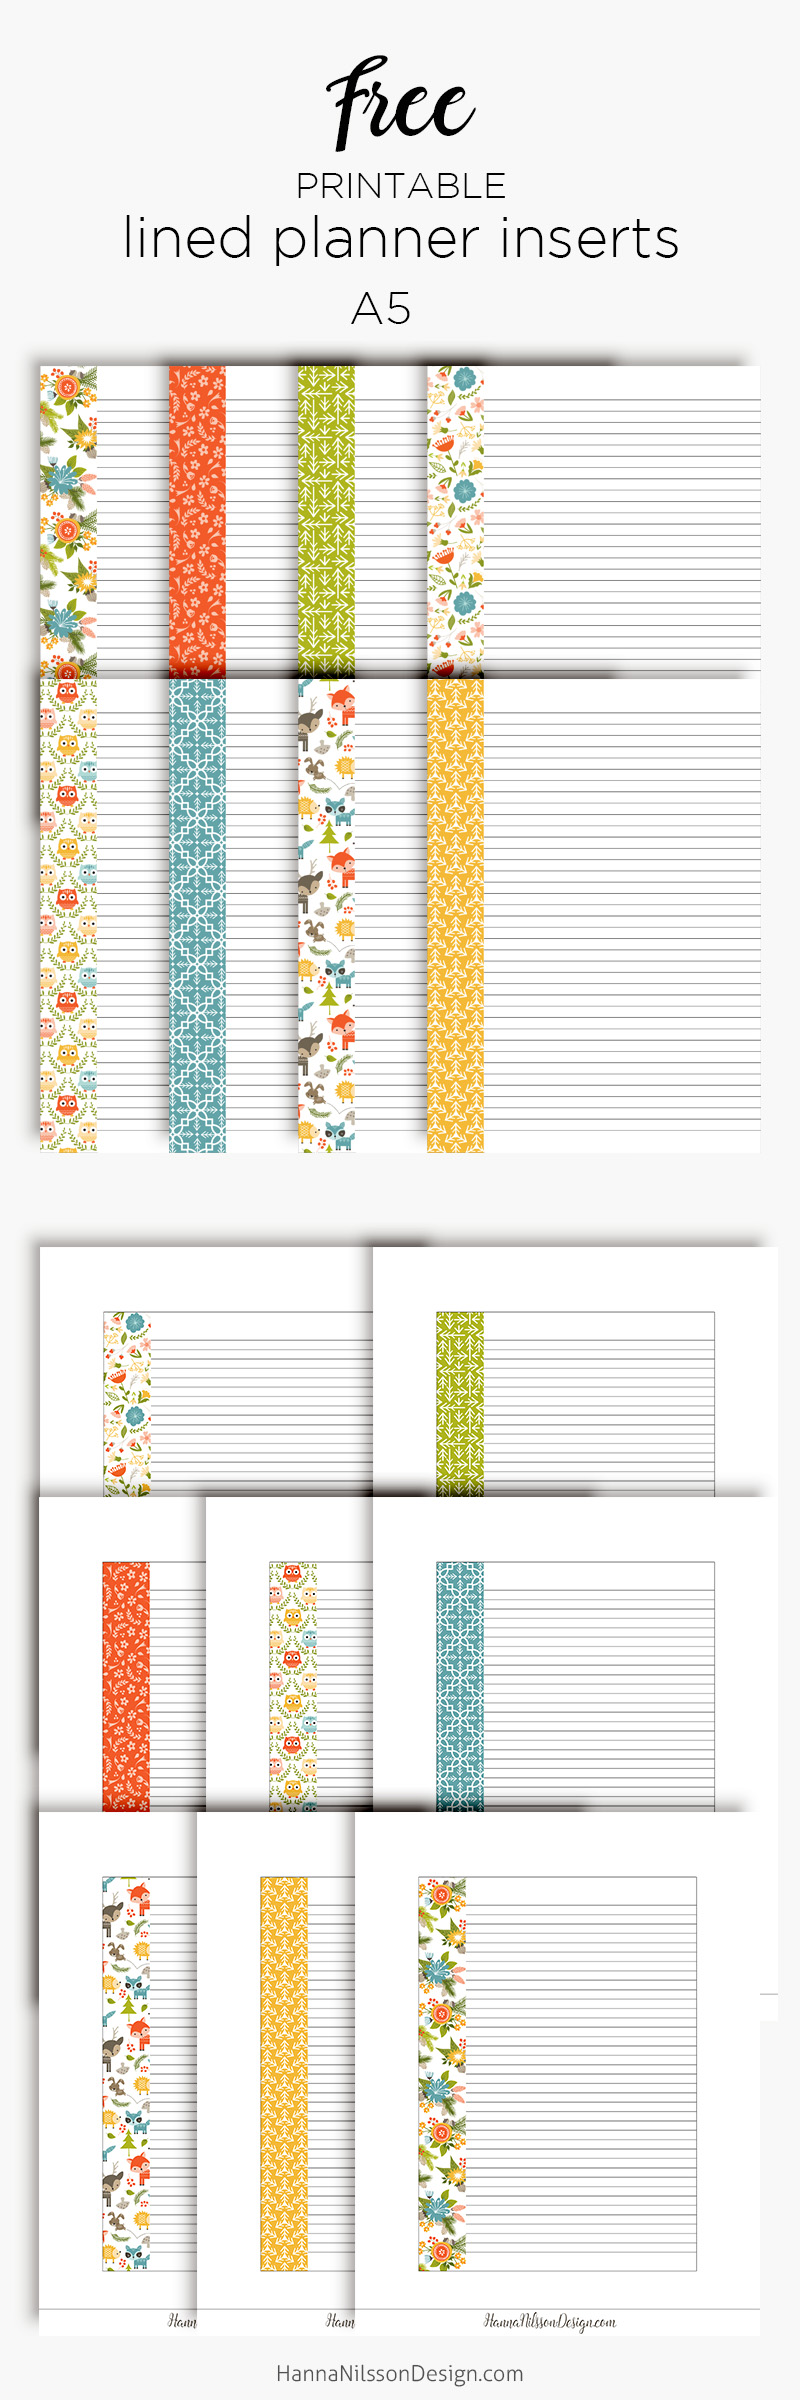 graphic relating to Planner Inserts Free identified as Included planner inserts Joyful Planner + A5 Person measurement